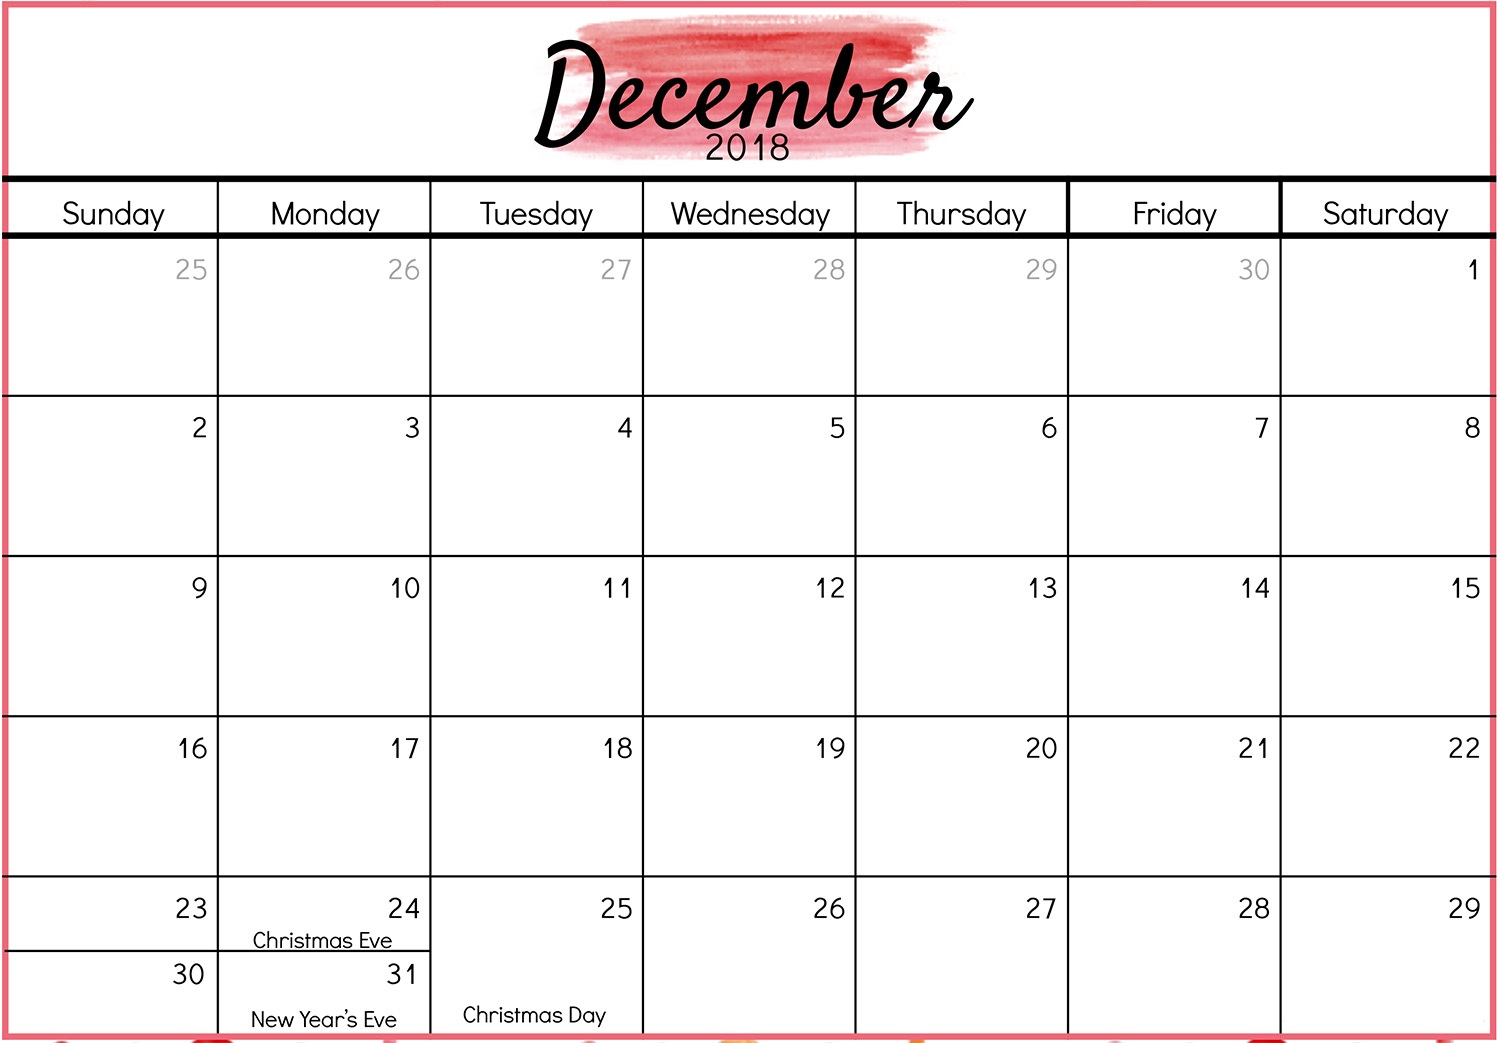 December 2018 Calendar Public and National Holidays